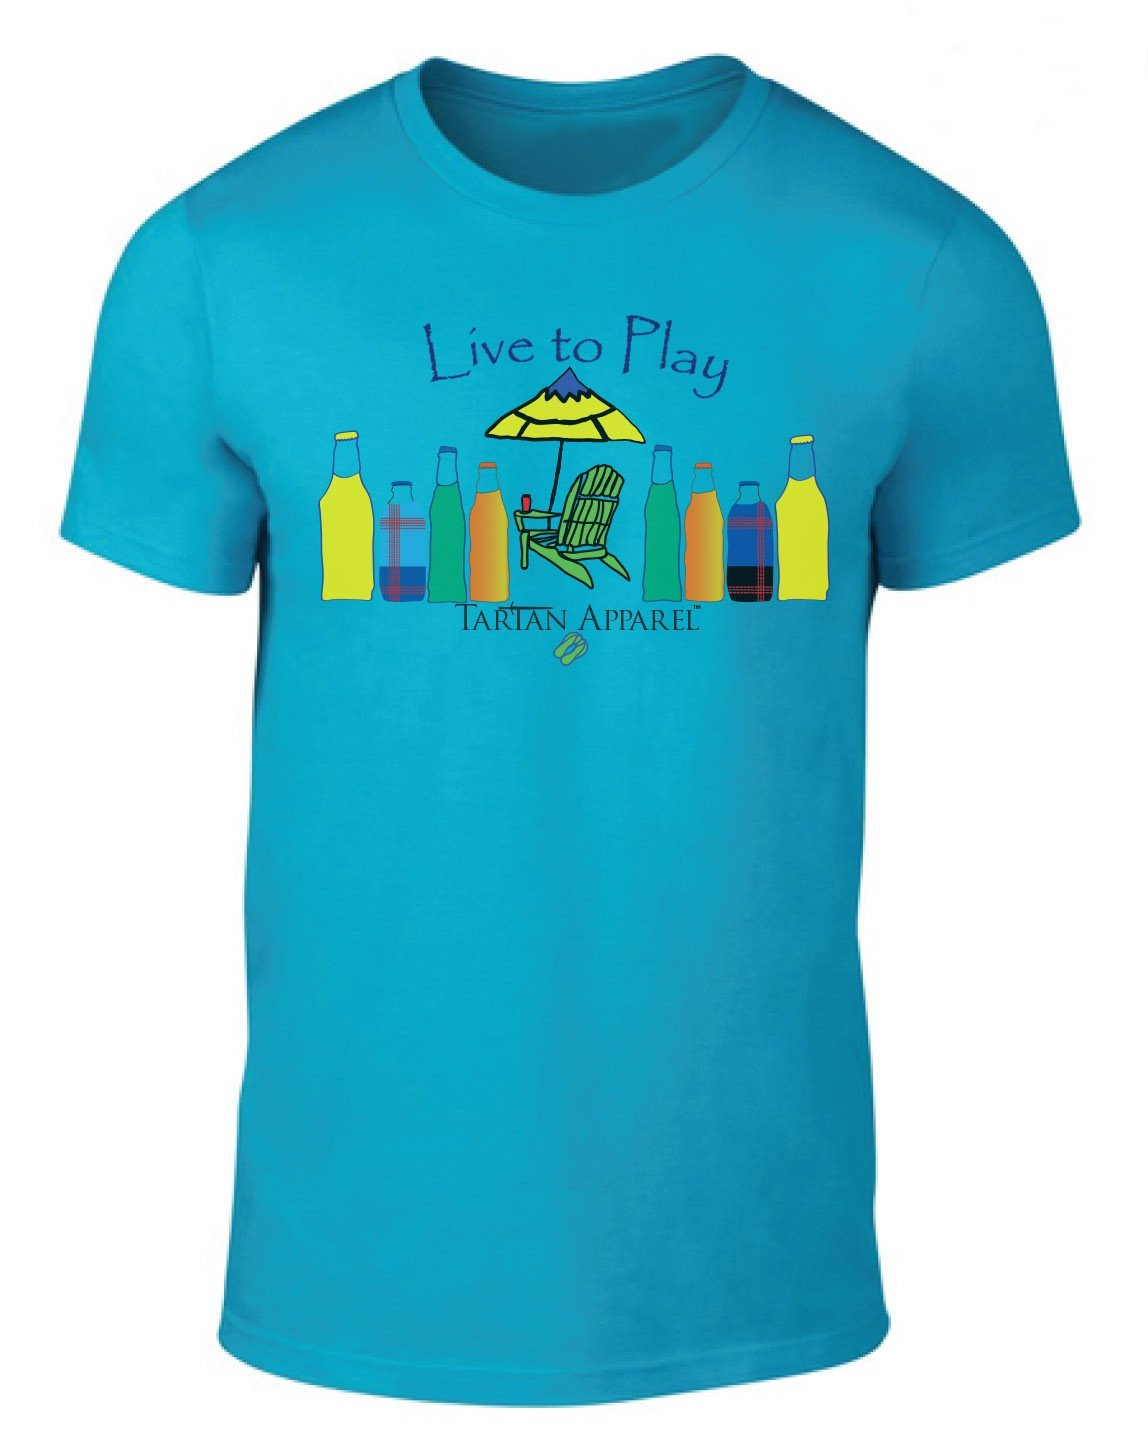 Tartan Apparel Live To Play T-Shirt In Caribbean Blue - S / Caribbean Blue - T-Shirt